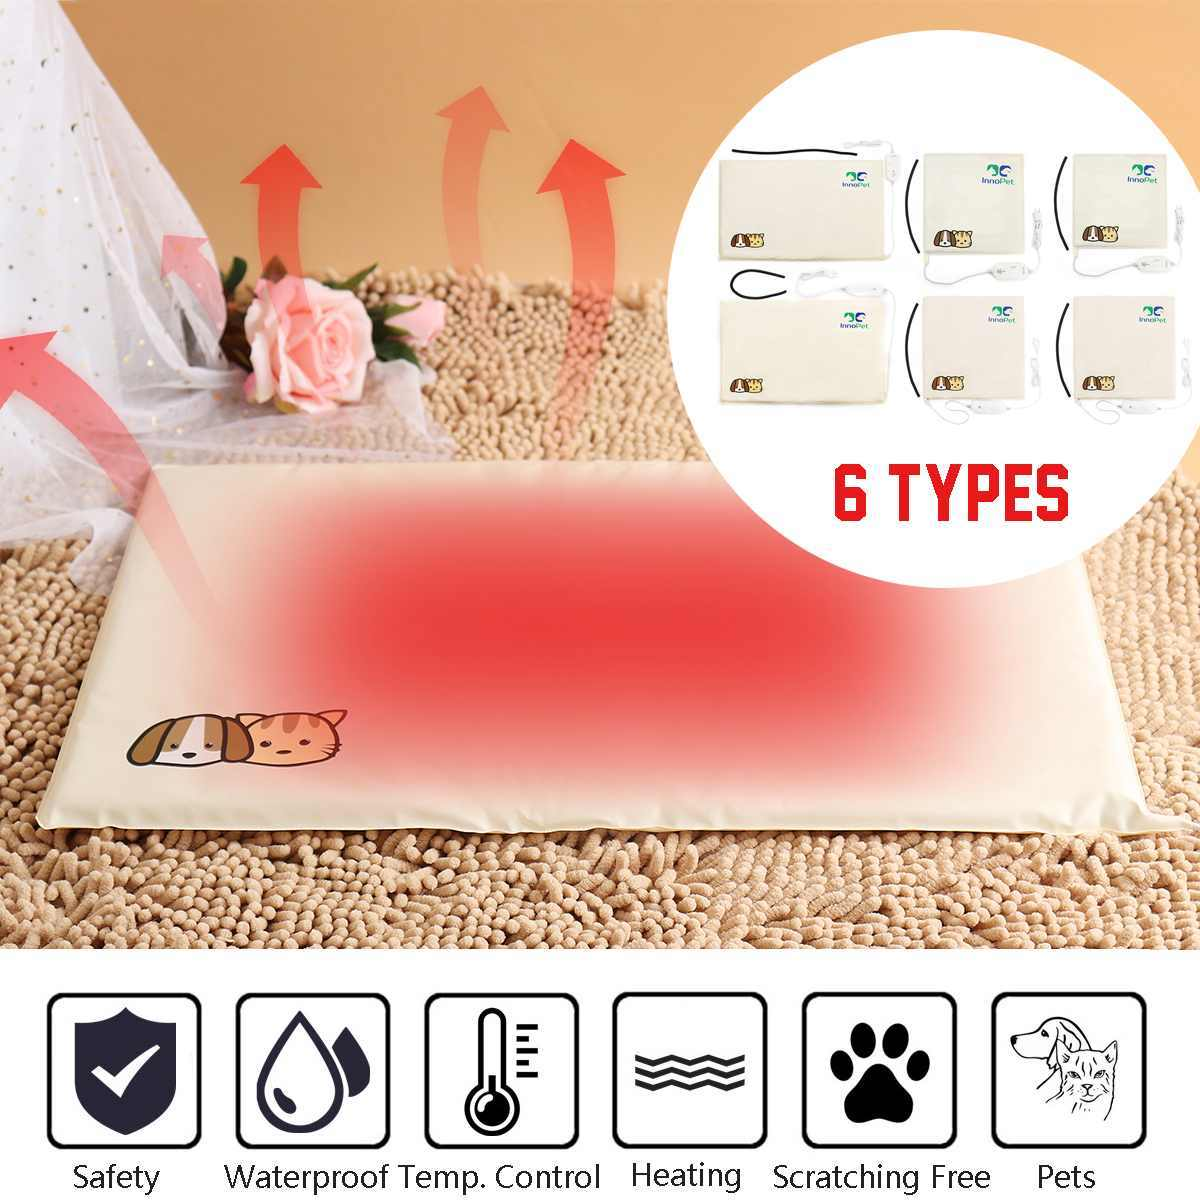 Waterproof 220V 20W/30W/35W 3/10 Gear S/M/L Waterproof Electric Pets Dogs Cats Heating Pad Blanket Warmer Bed Mat Cotton Home